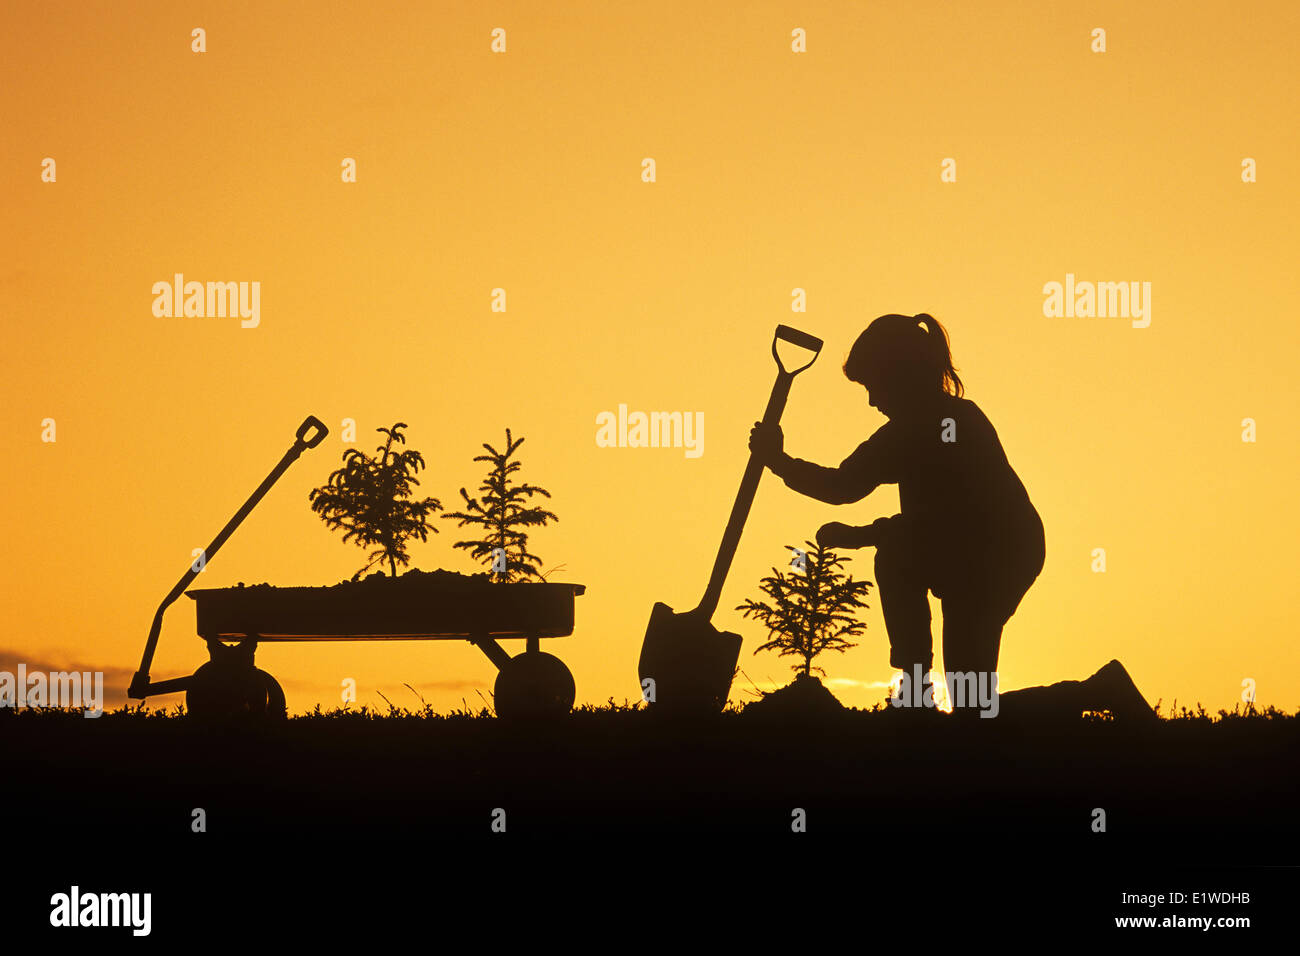 a girl holding a shovel, examines a spruce tree she has just planted, Winnipeg, Manitoba, Canada - Stock Image